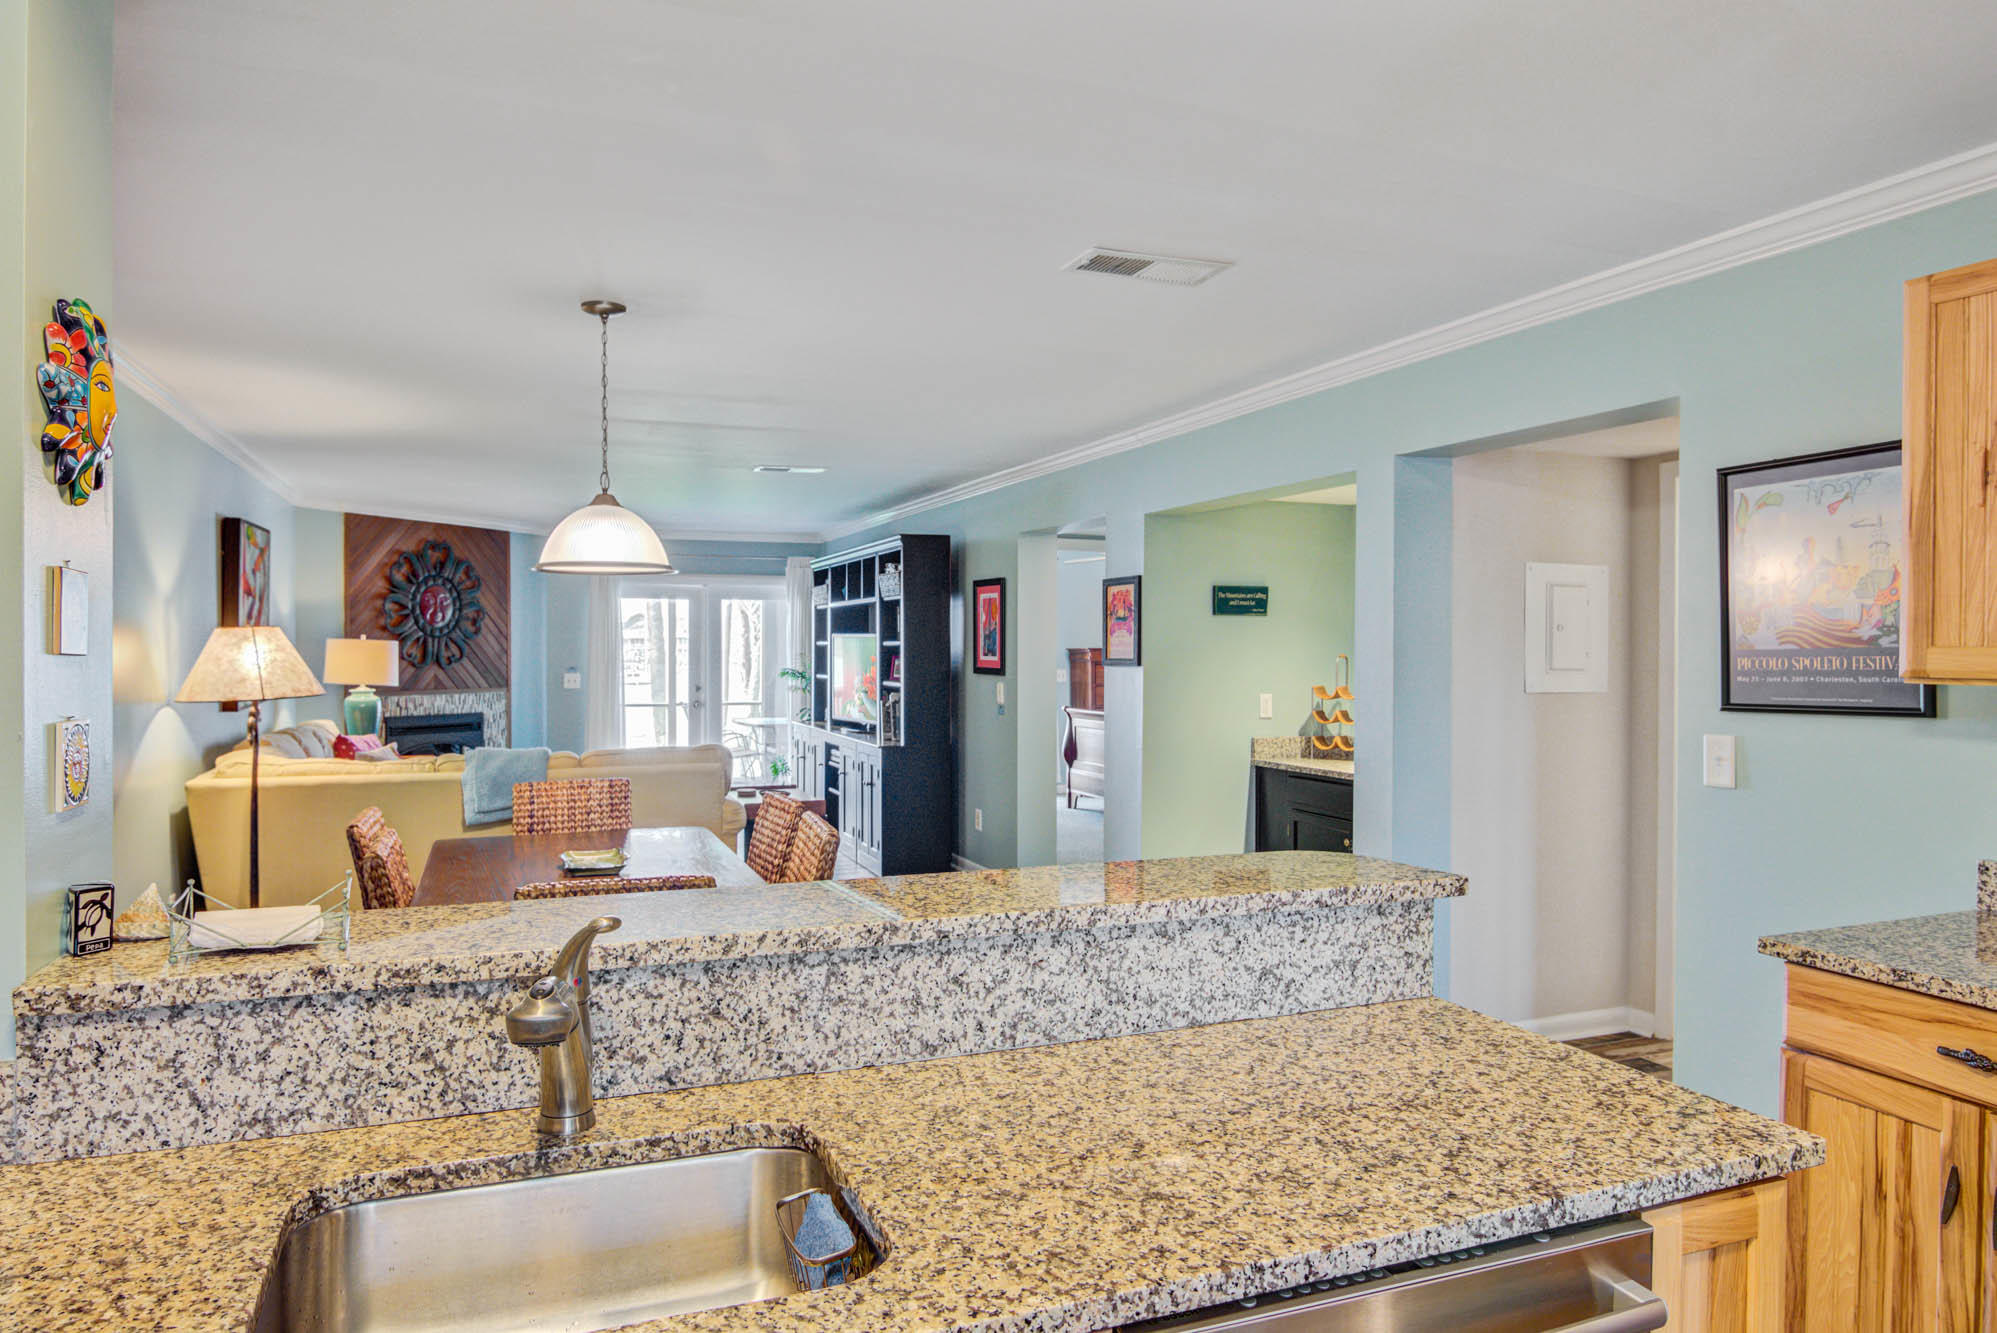 Mariners Cay Homes For Sale - 19 Mariners Cay, Folly Beach, SC - 13